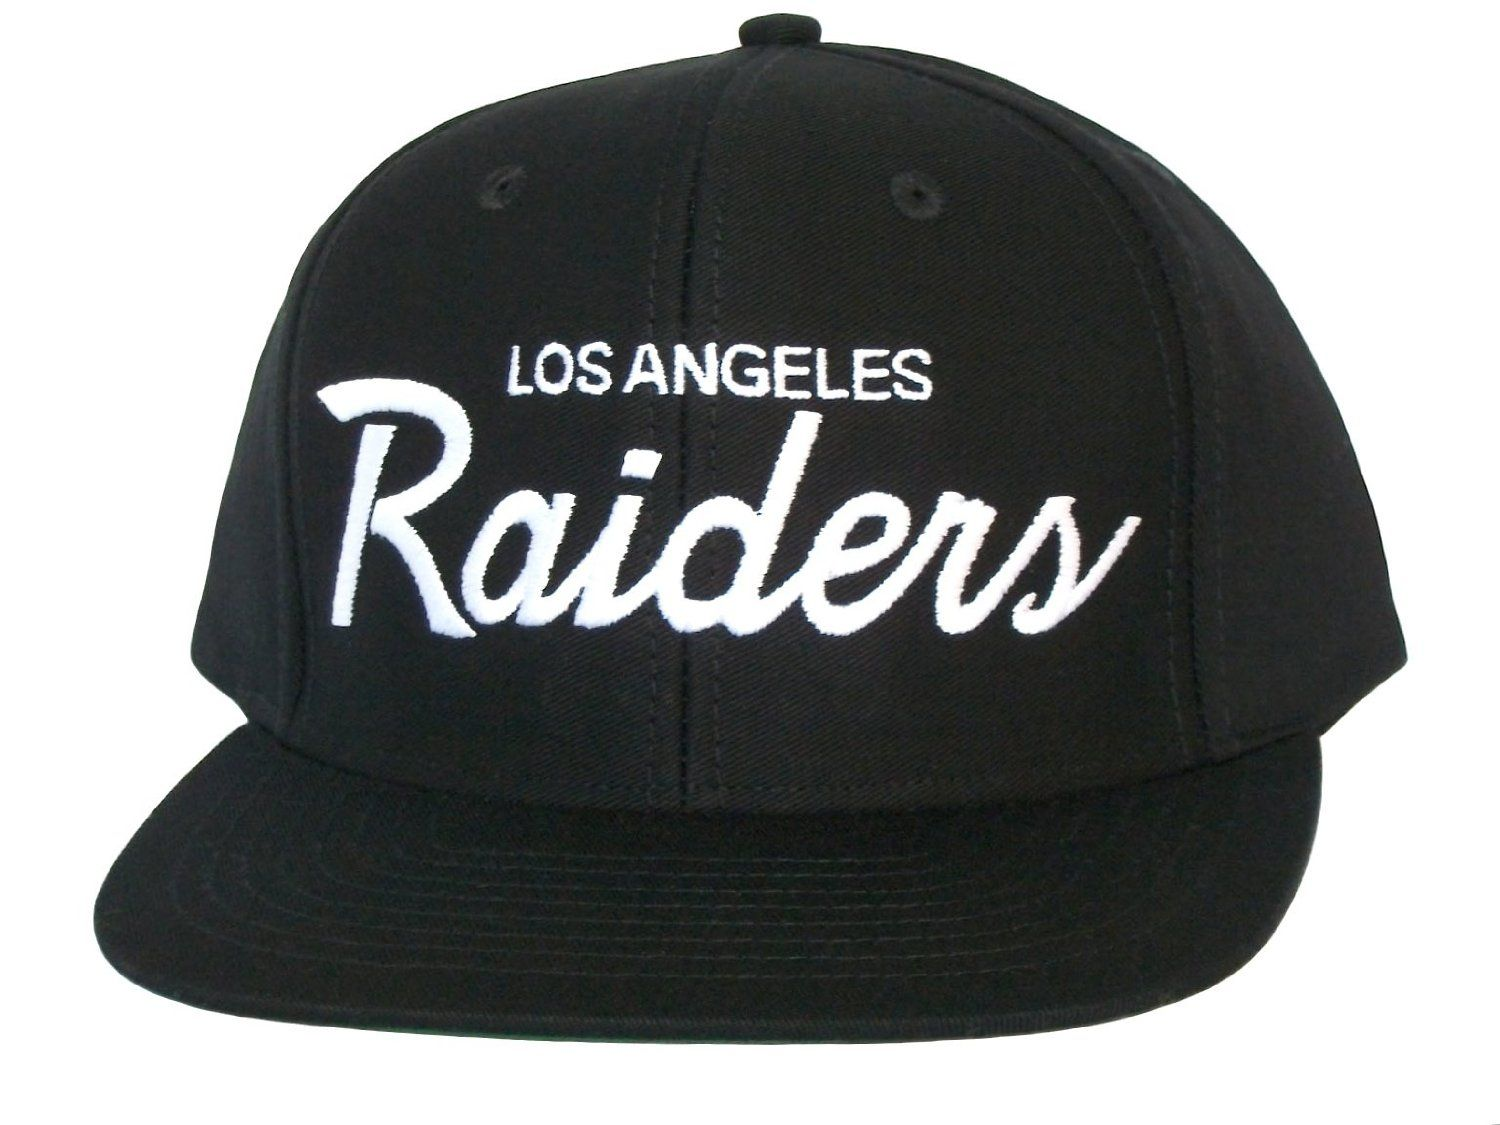 81021762516 LOS ANGELES LA RAIDERS Script Snapback Hat - NFL Cap - Black  Amazon.co.uk   Sports   Outdoors